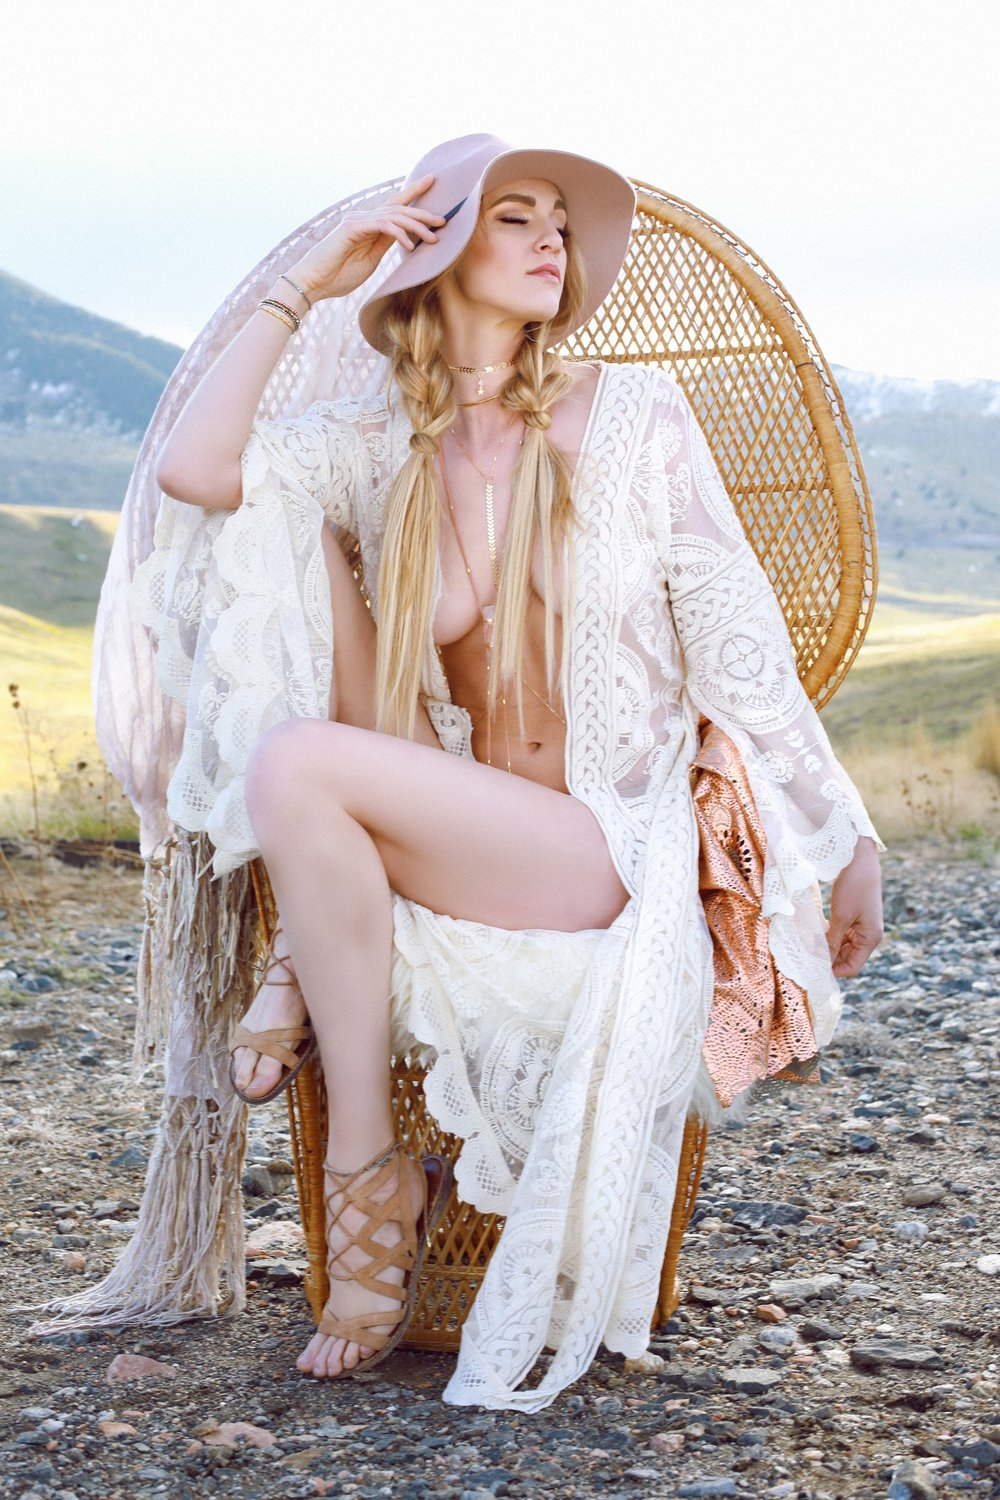 COLORADO GYPSY DREAMIN' - Photo Shoot Story shot by Alyssa Risley - IG @alyssarisley #WHITE #BOHO